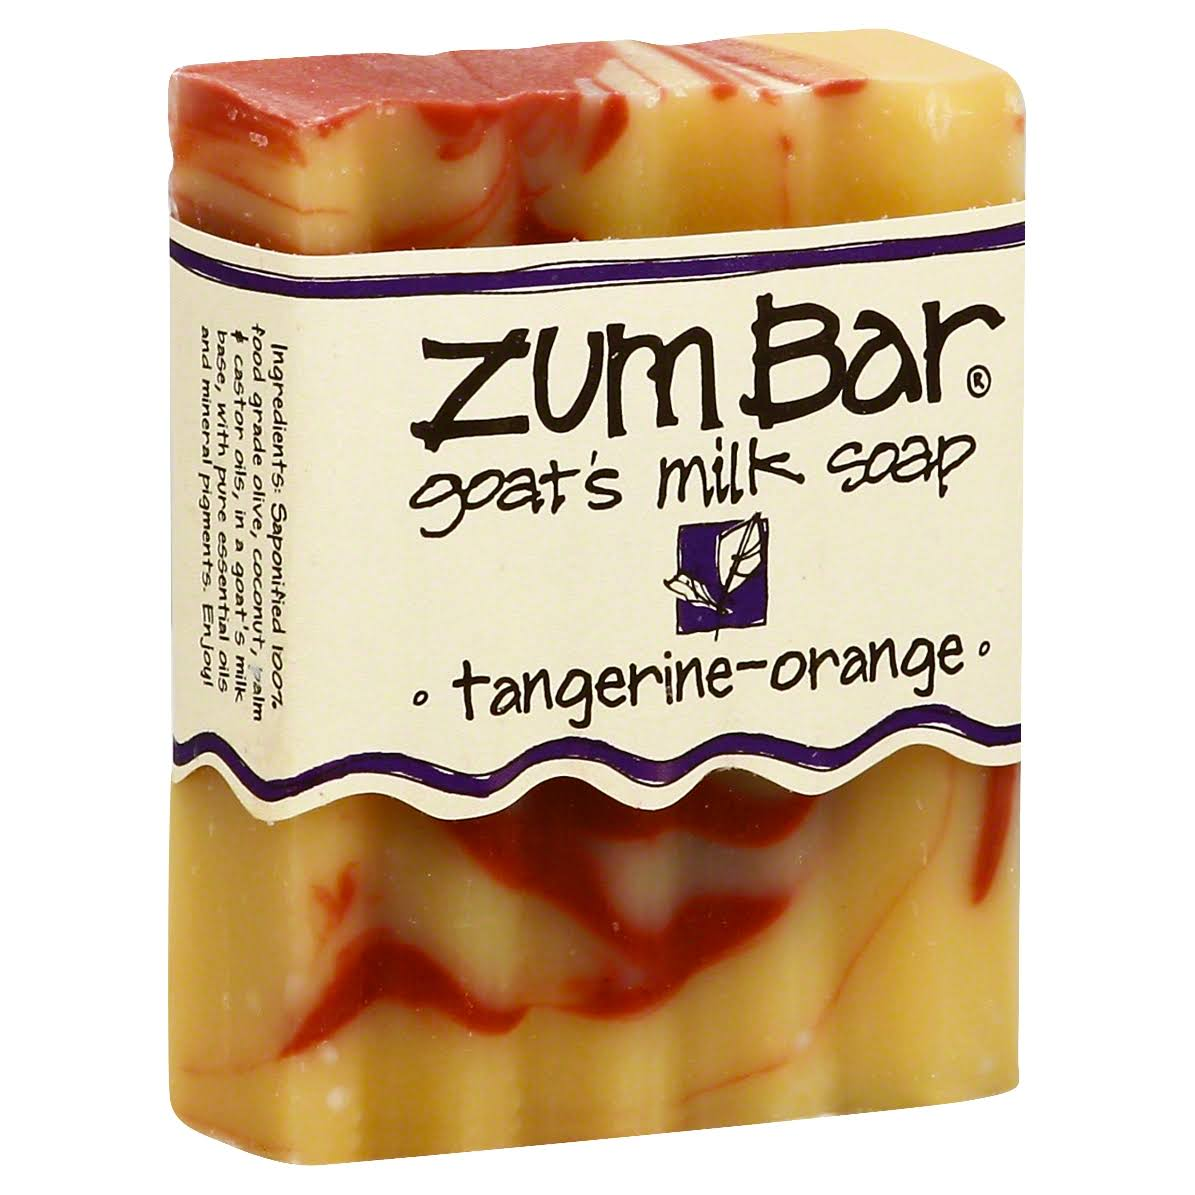 Zum Bar Goat's Milk Soap - Tangerine-Orange, 85g